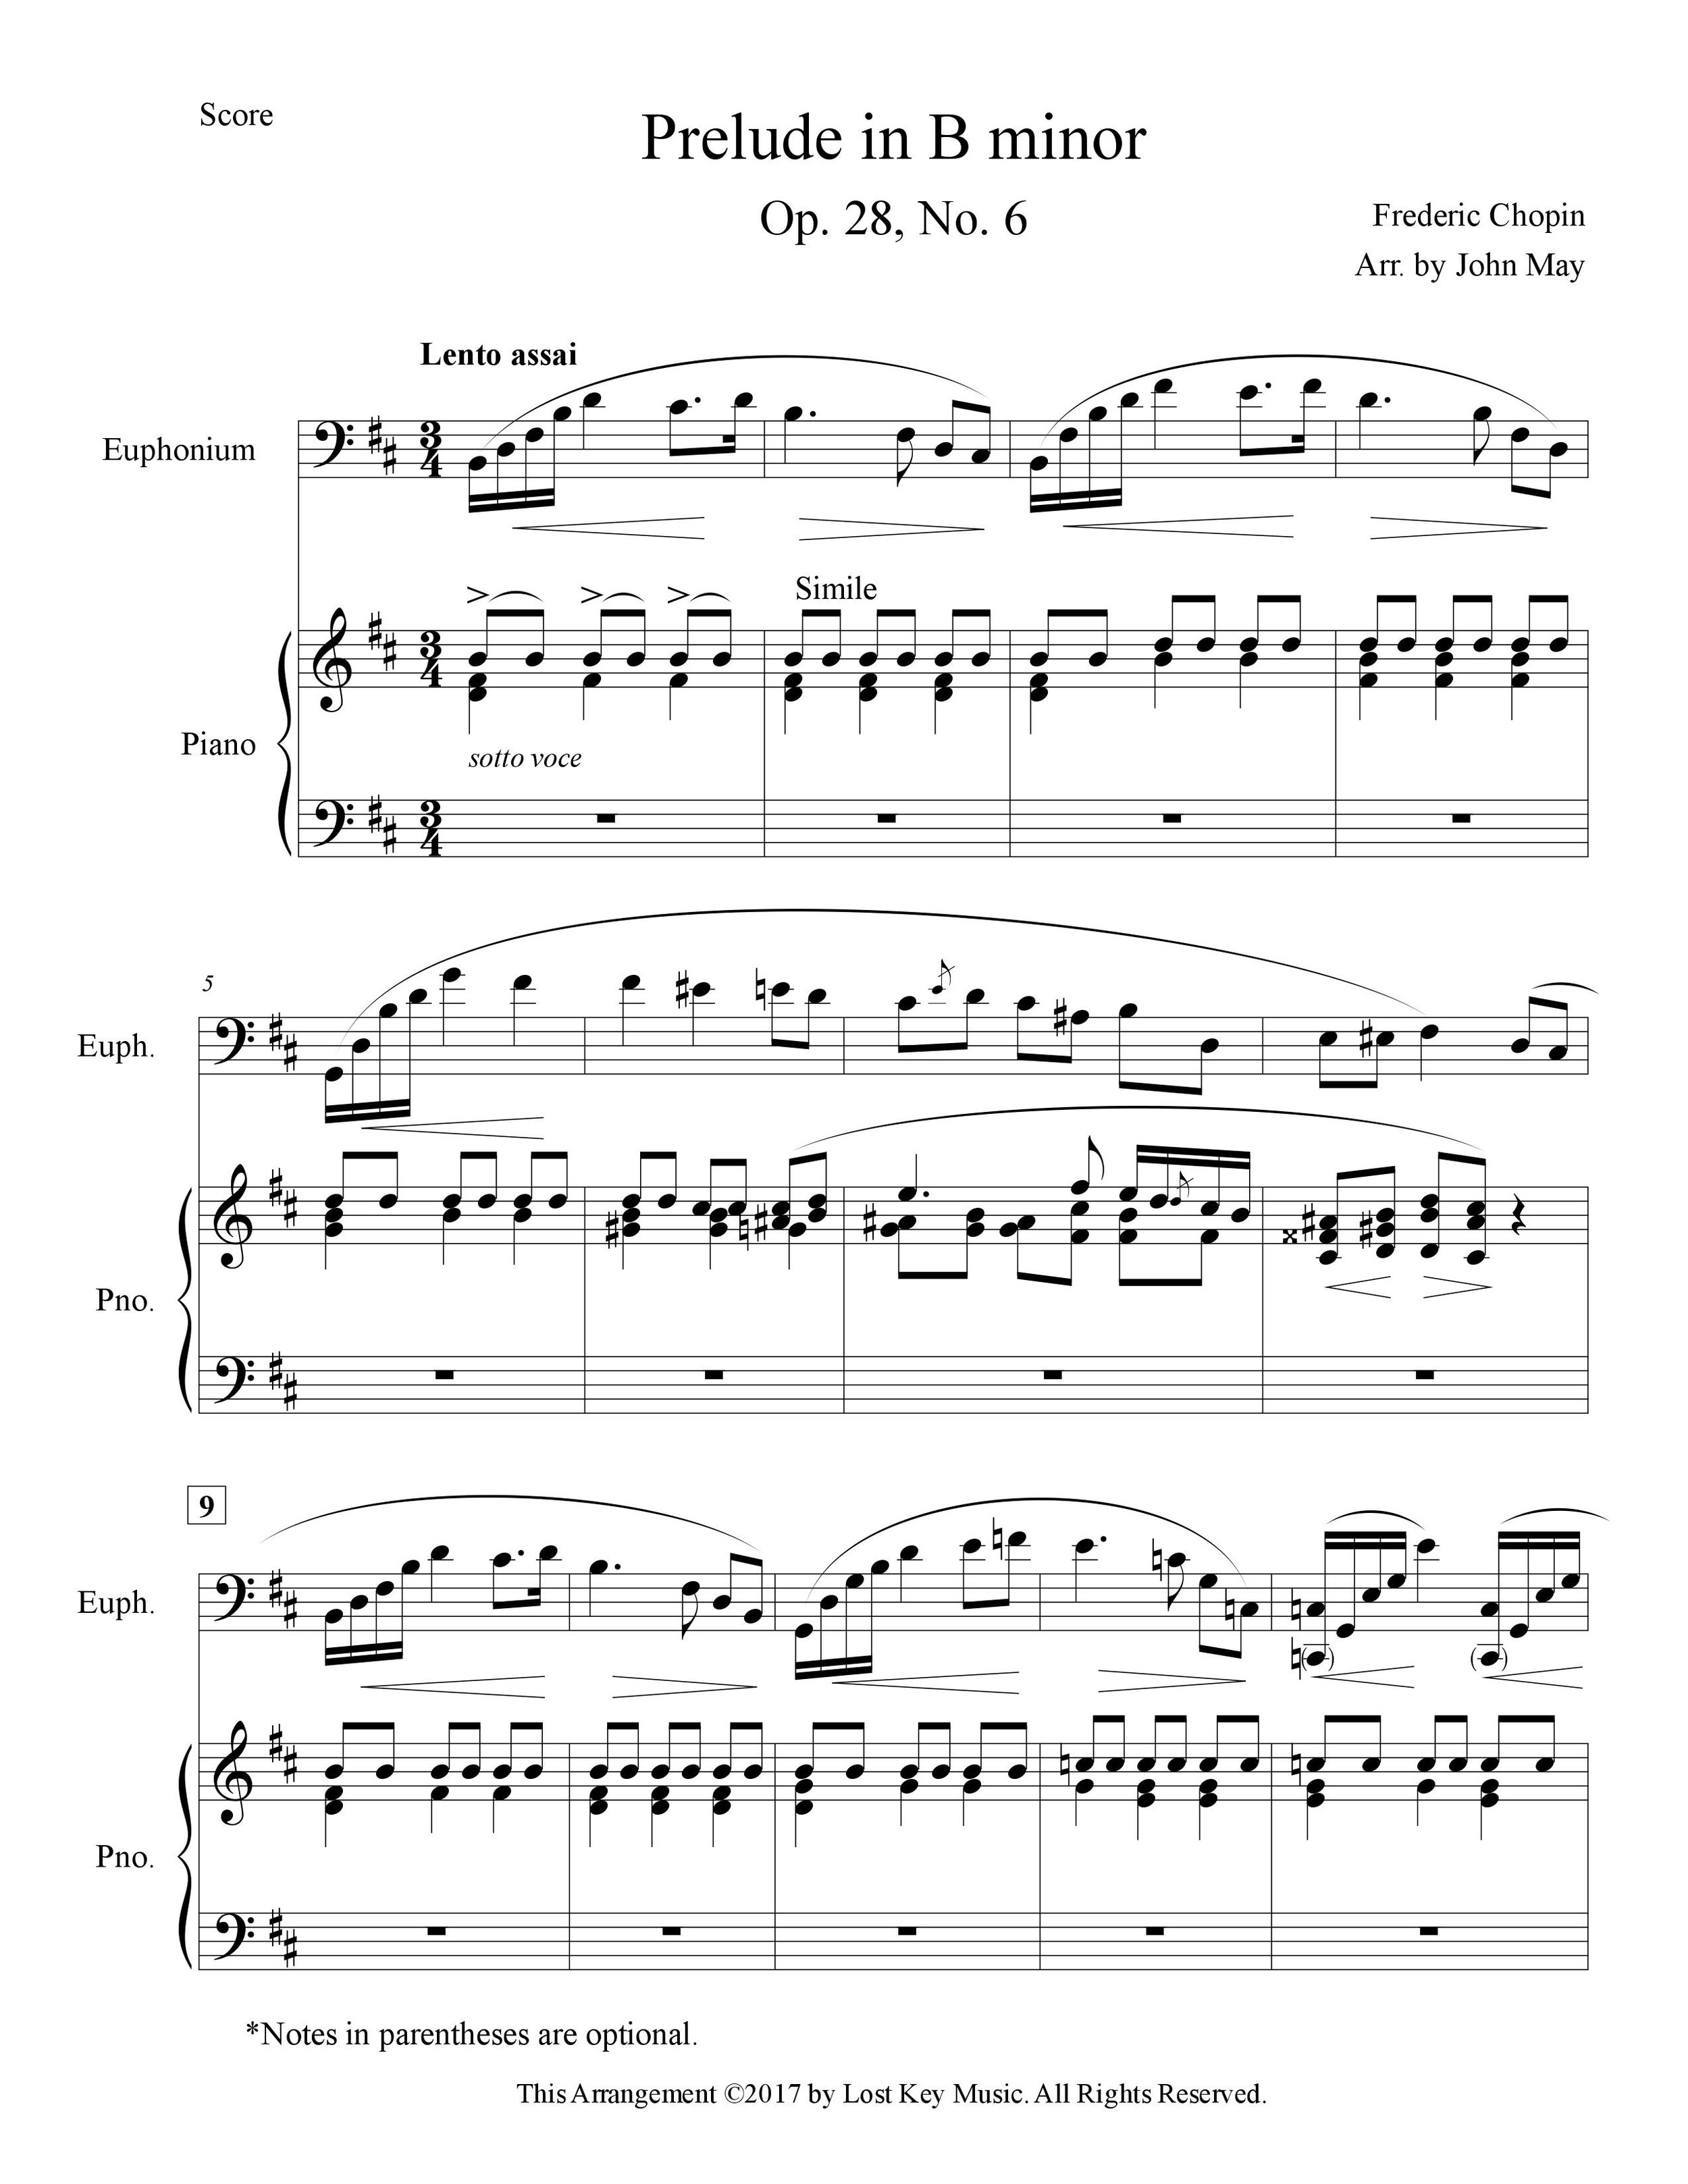 Chopin Prelude in B minor-Score Sample.jpg